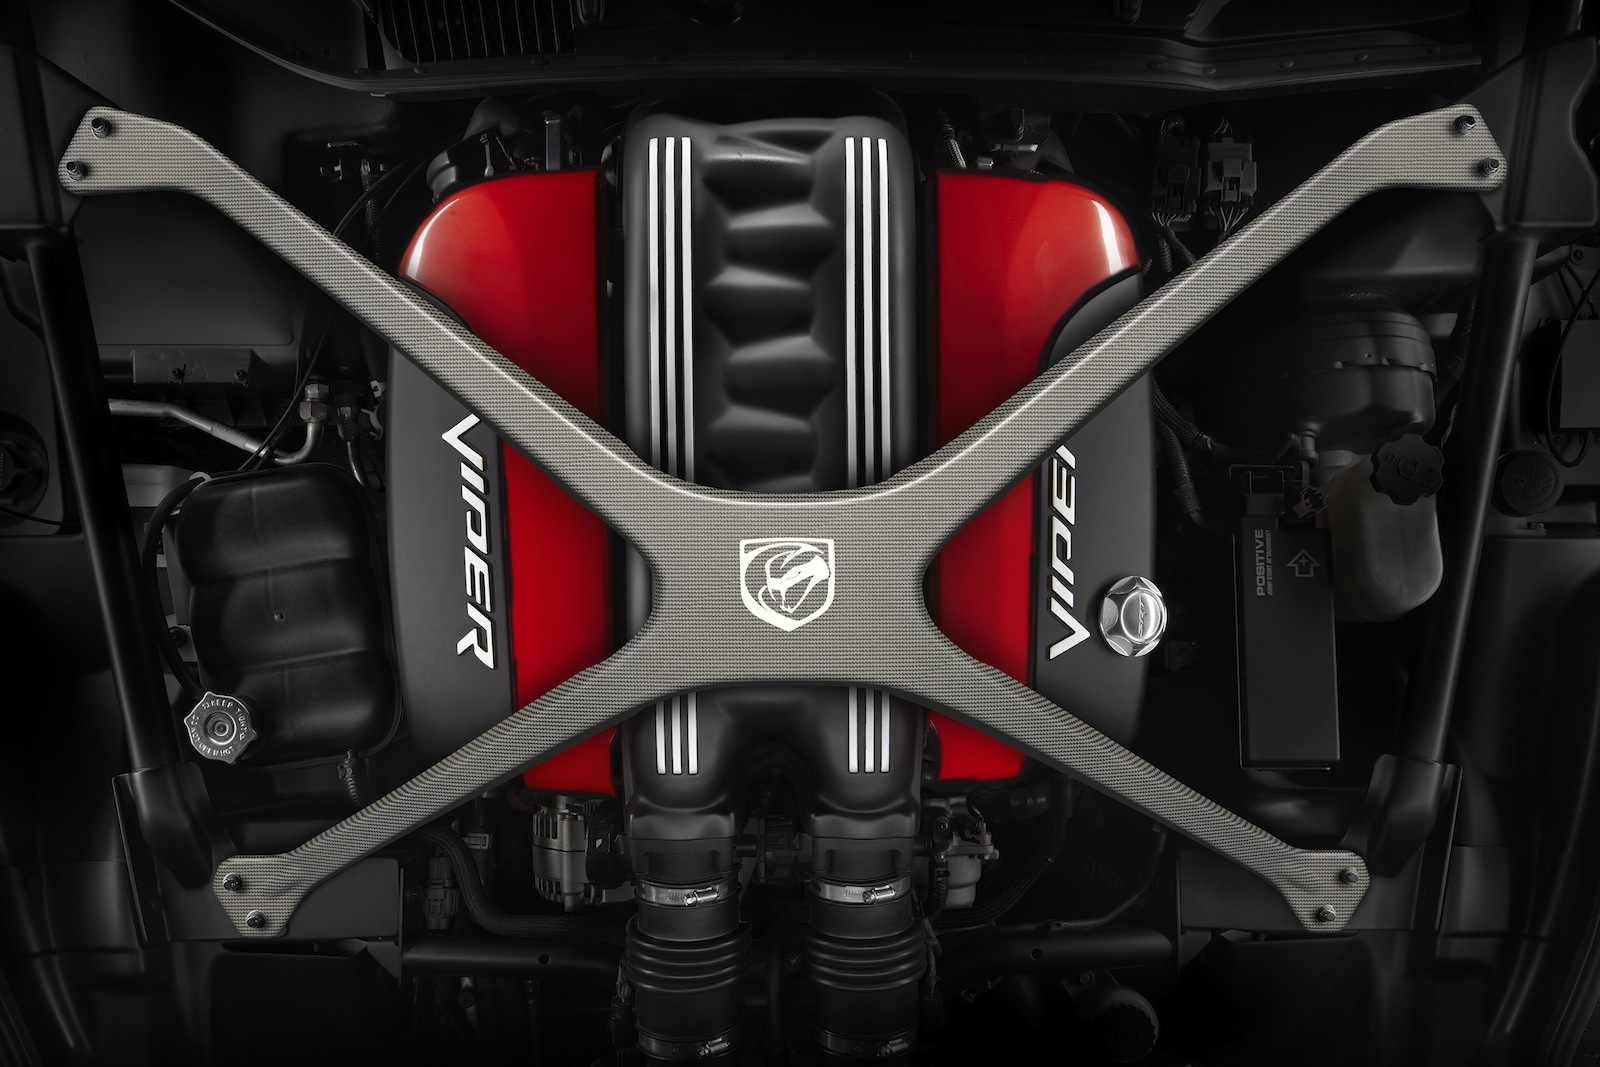 Mopar Announces New Performance Range For The 2013 Srt Viper